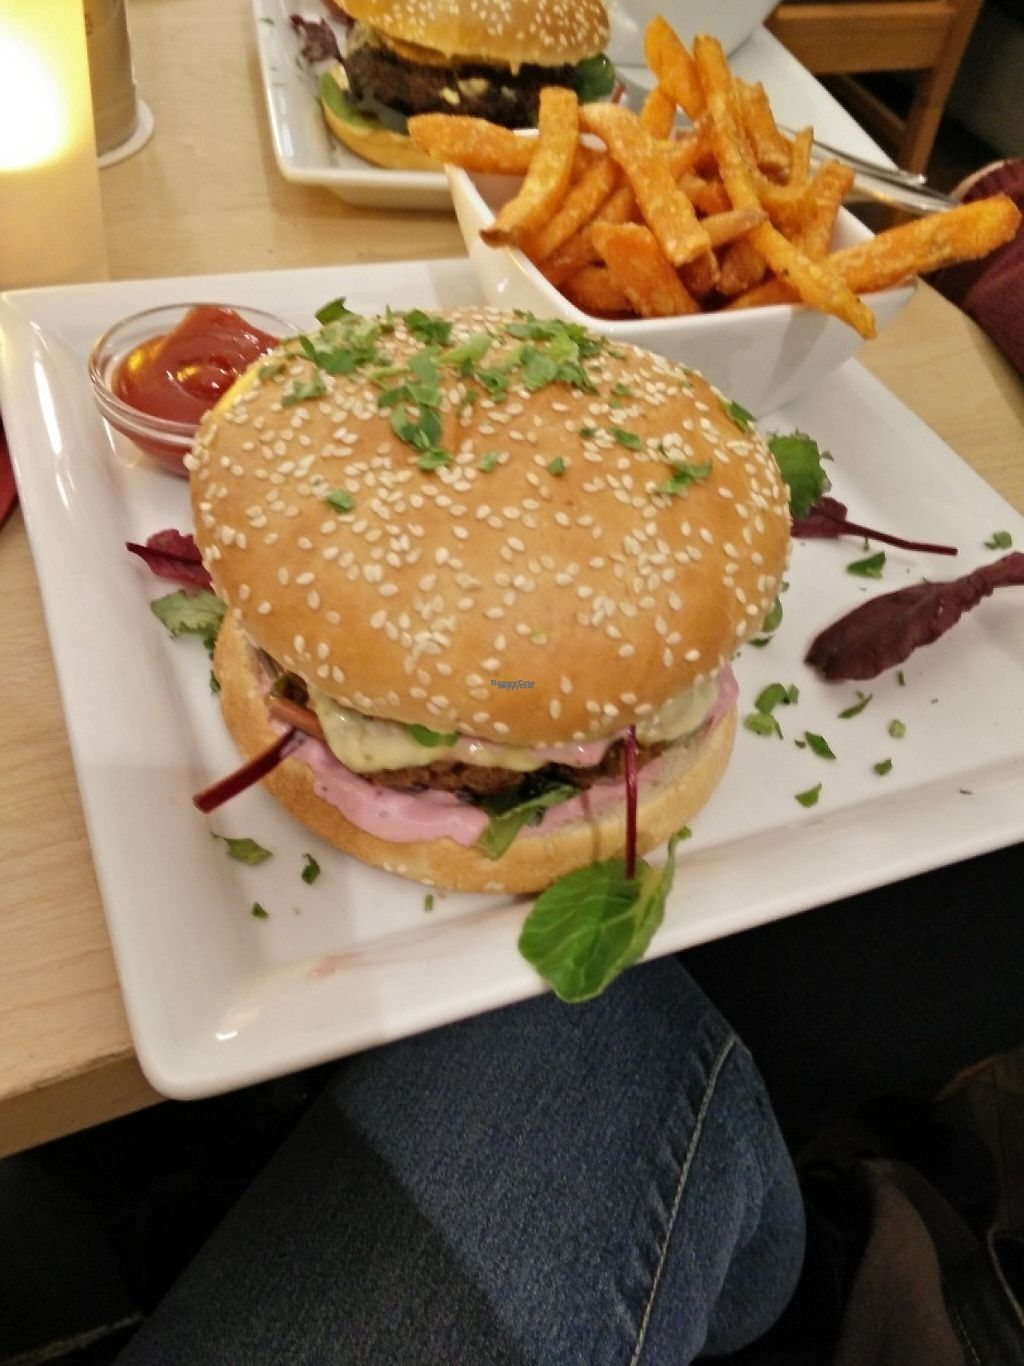 """Photo of Hofcafe  by <a href=""""/members/profile/Physalis"""">Physalis</a> <br/>Vegetarian burger, can be ordered in vegan too <br/> January 27, 2017  - <a href='/contact/abuse/image/56561/217959'>Report</a>"""